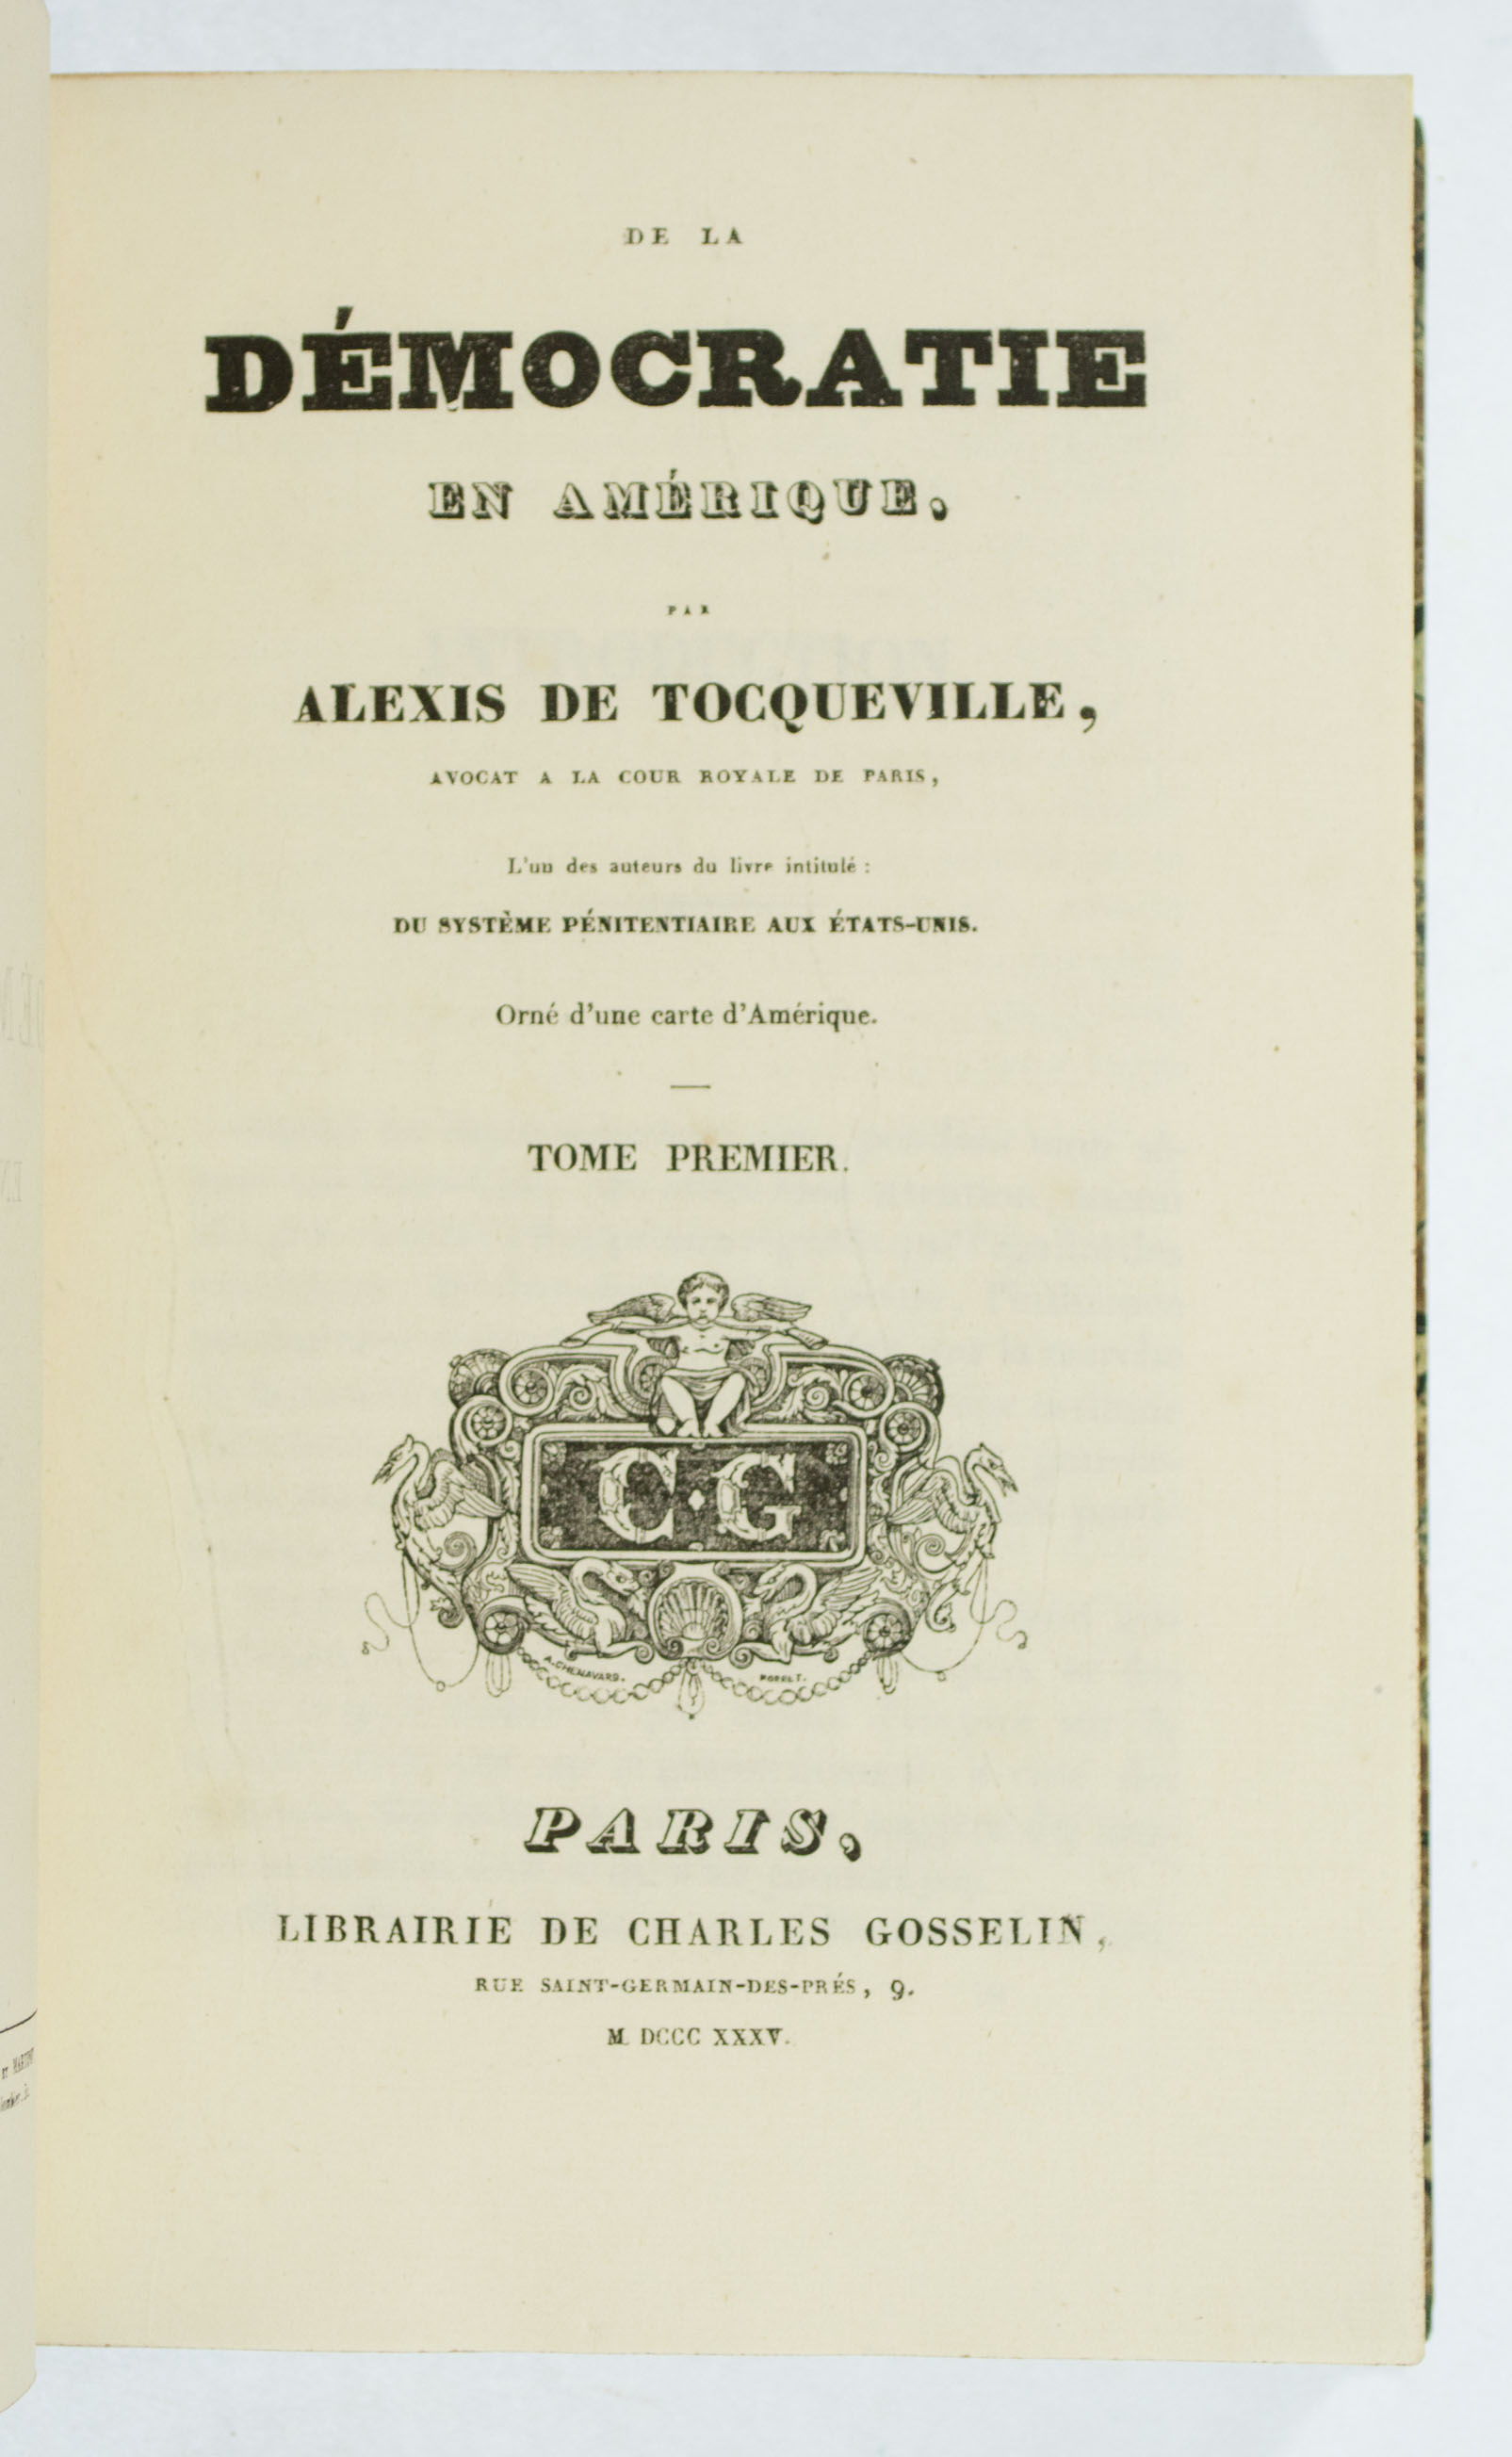 tocqueville essay The political situation in france and america in the similar revolutionary terms, acknowledging the fact that america did not possess a single germ of revolution, while the roots of the press and freedom of press development in france were mainly found in the social instability, through which that country had to go during that time.